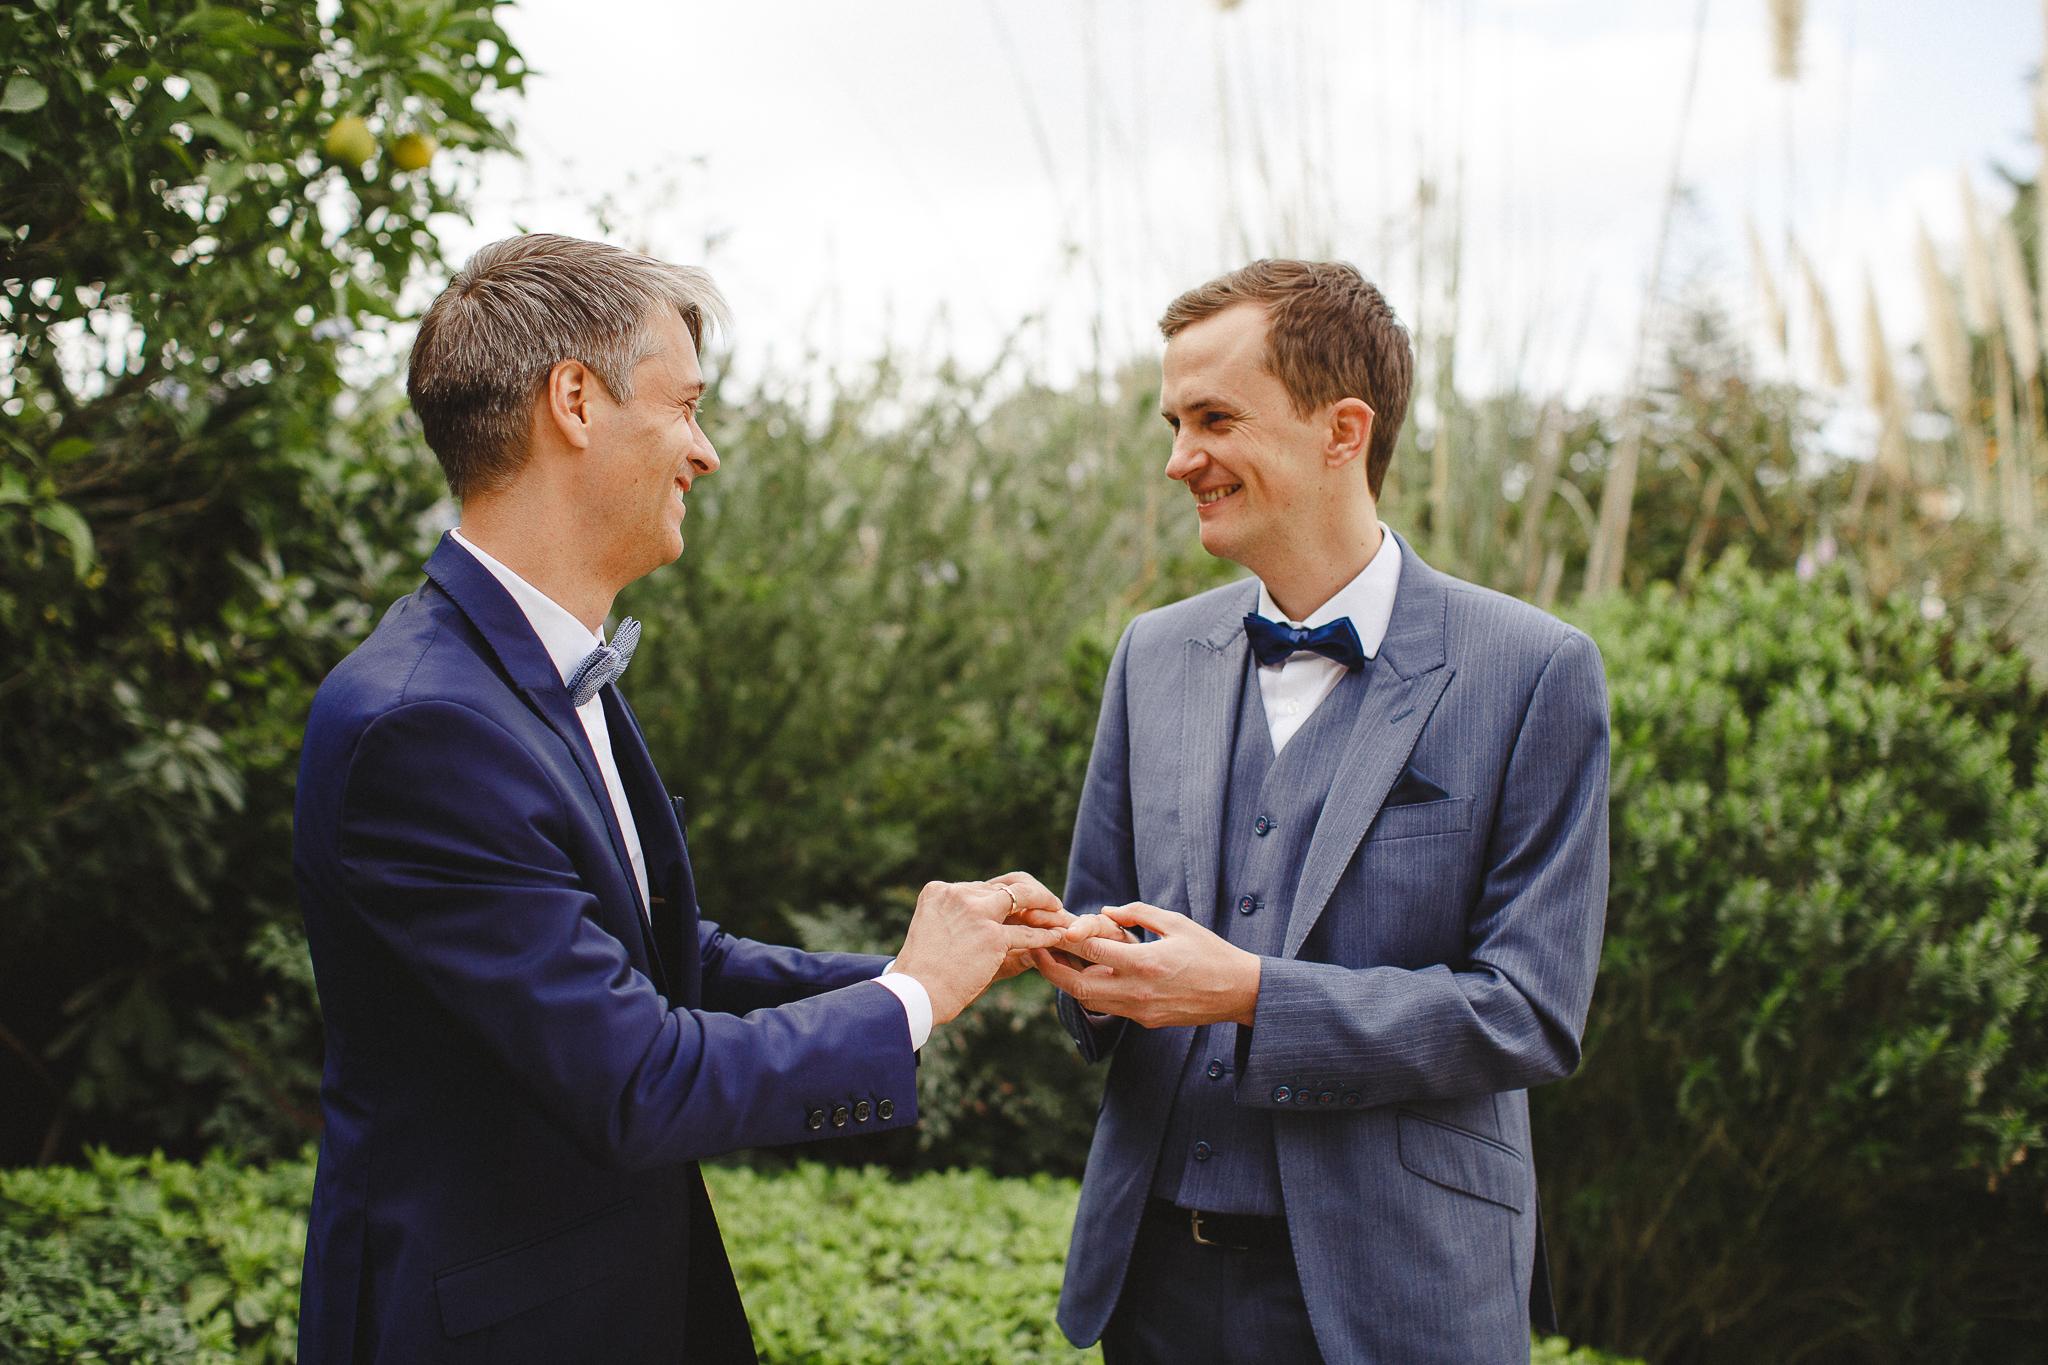 The sweet couple smiles after they exchange rings during their elopement ceremony